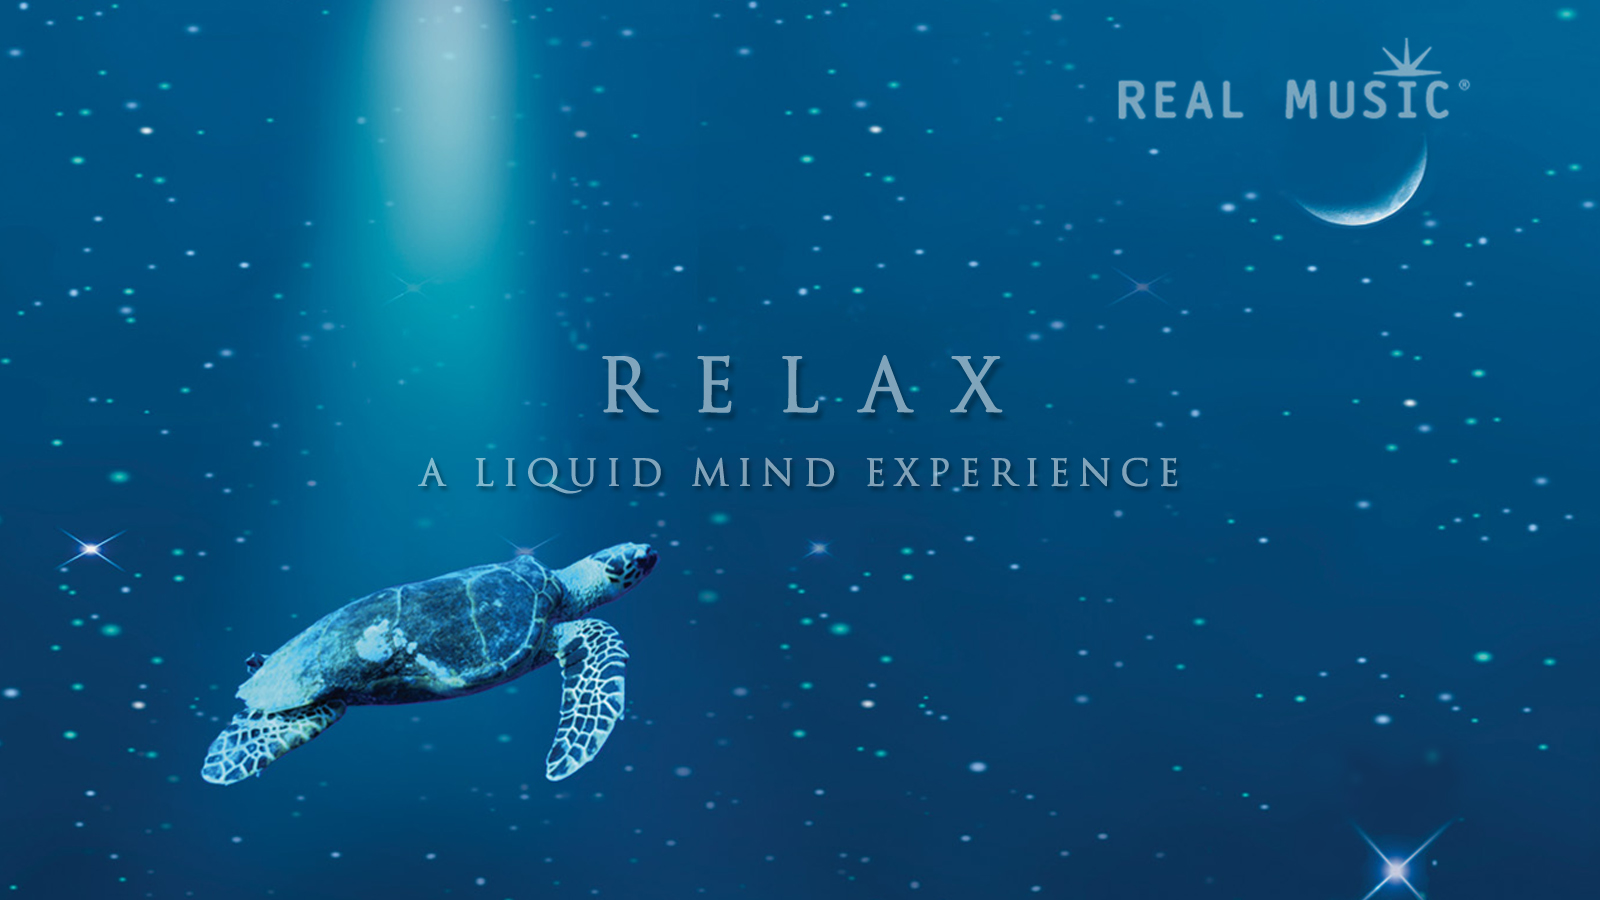 Here are free Real Music ® and Liquid Mind ® wallpapers for computer